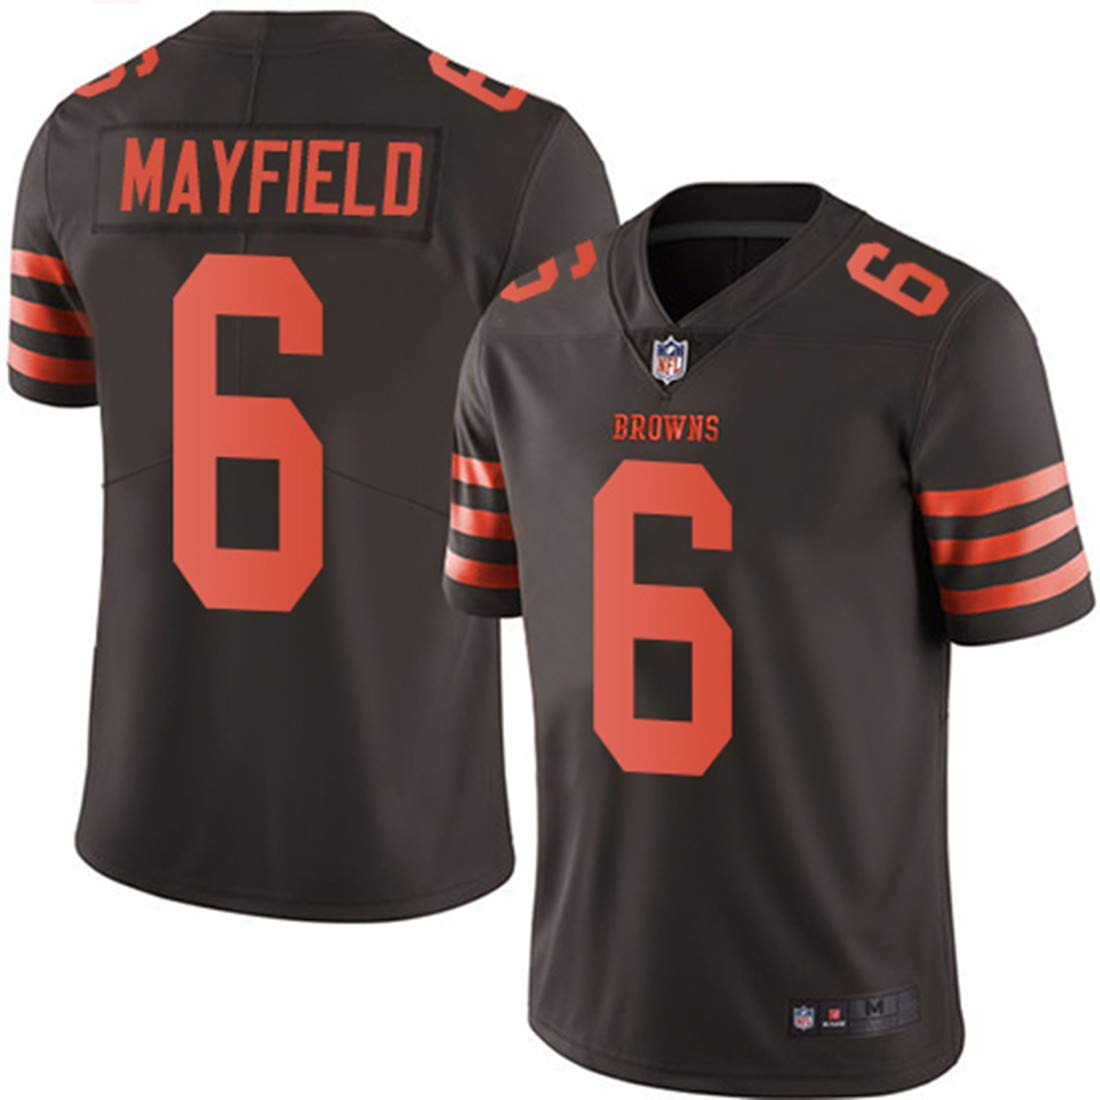 pretty nice 40f6c 01b17 Men's Cleveland Browns #6 Baker Mayfield Brown Embroidered Name & Number  Jersey